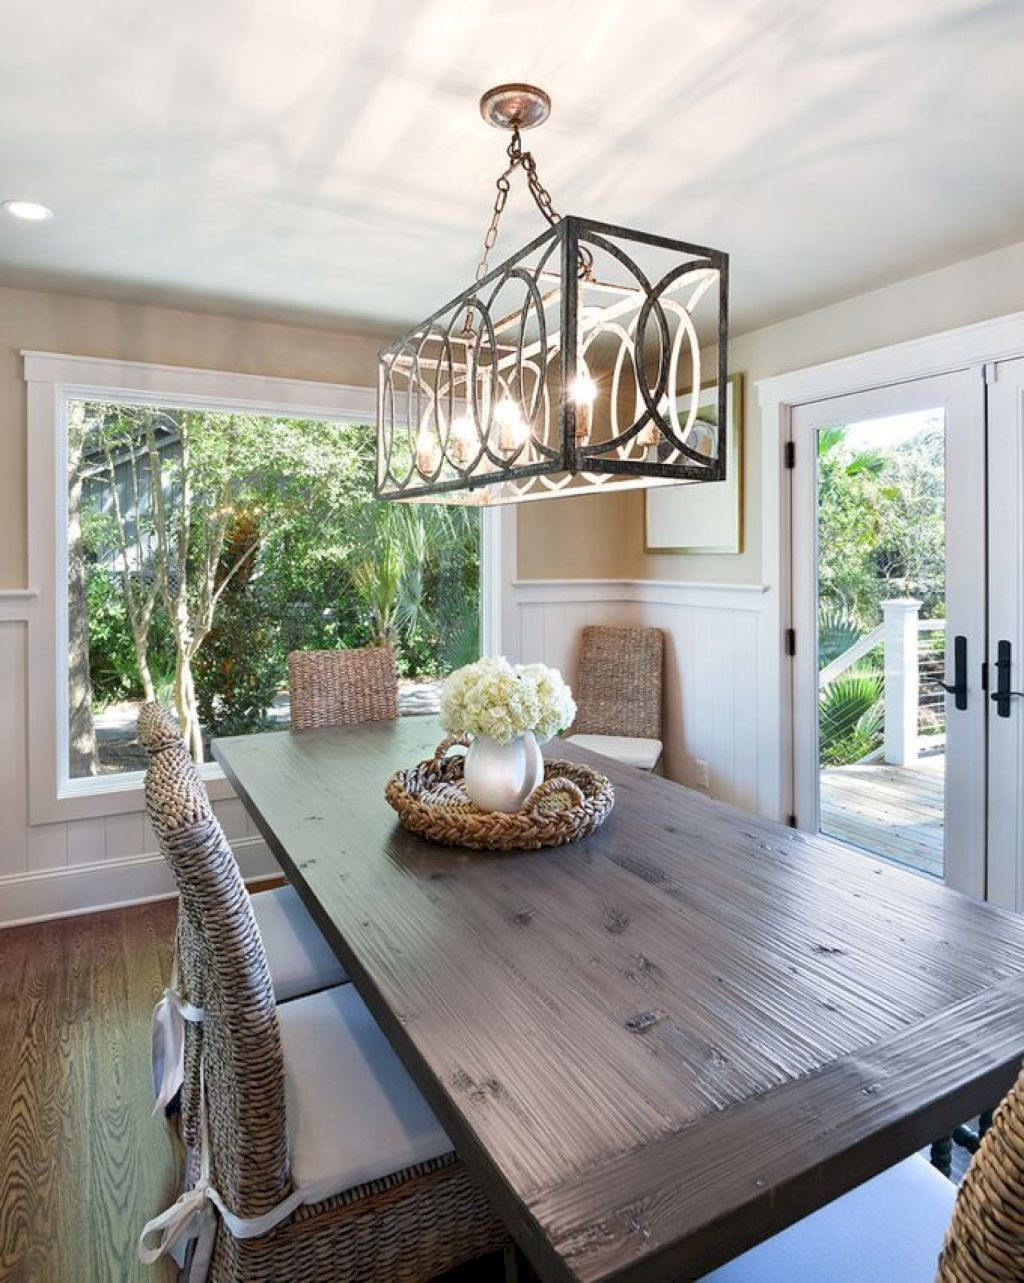 Dining Room Remodel Impressive 40 Comfy Modern Farmhouse Dining Room Remodel Ideas  Modern Inspiration